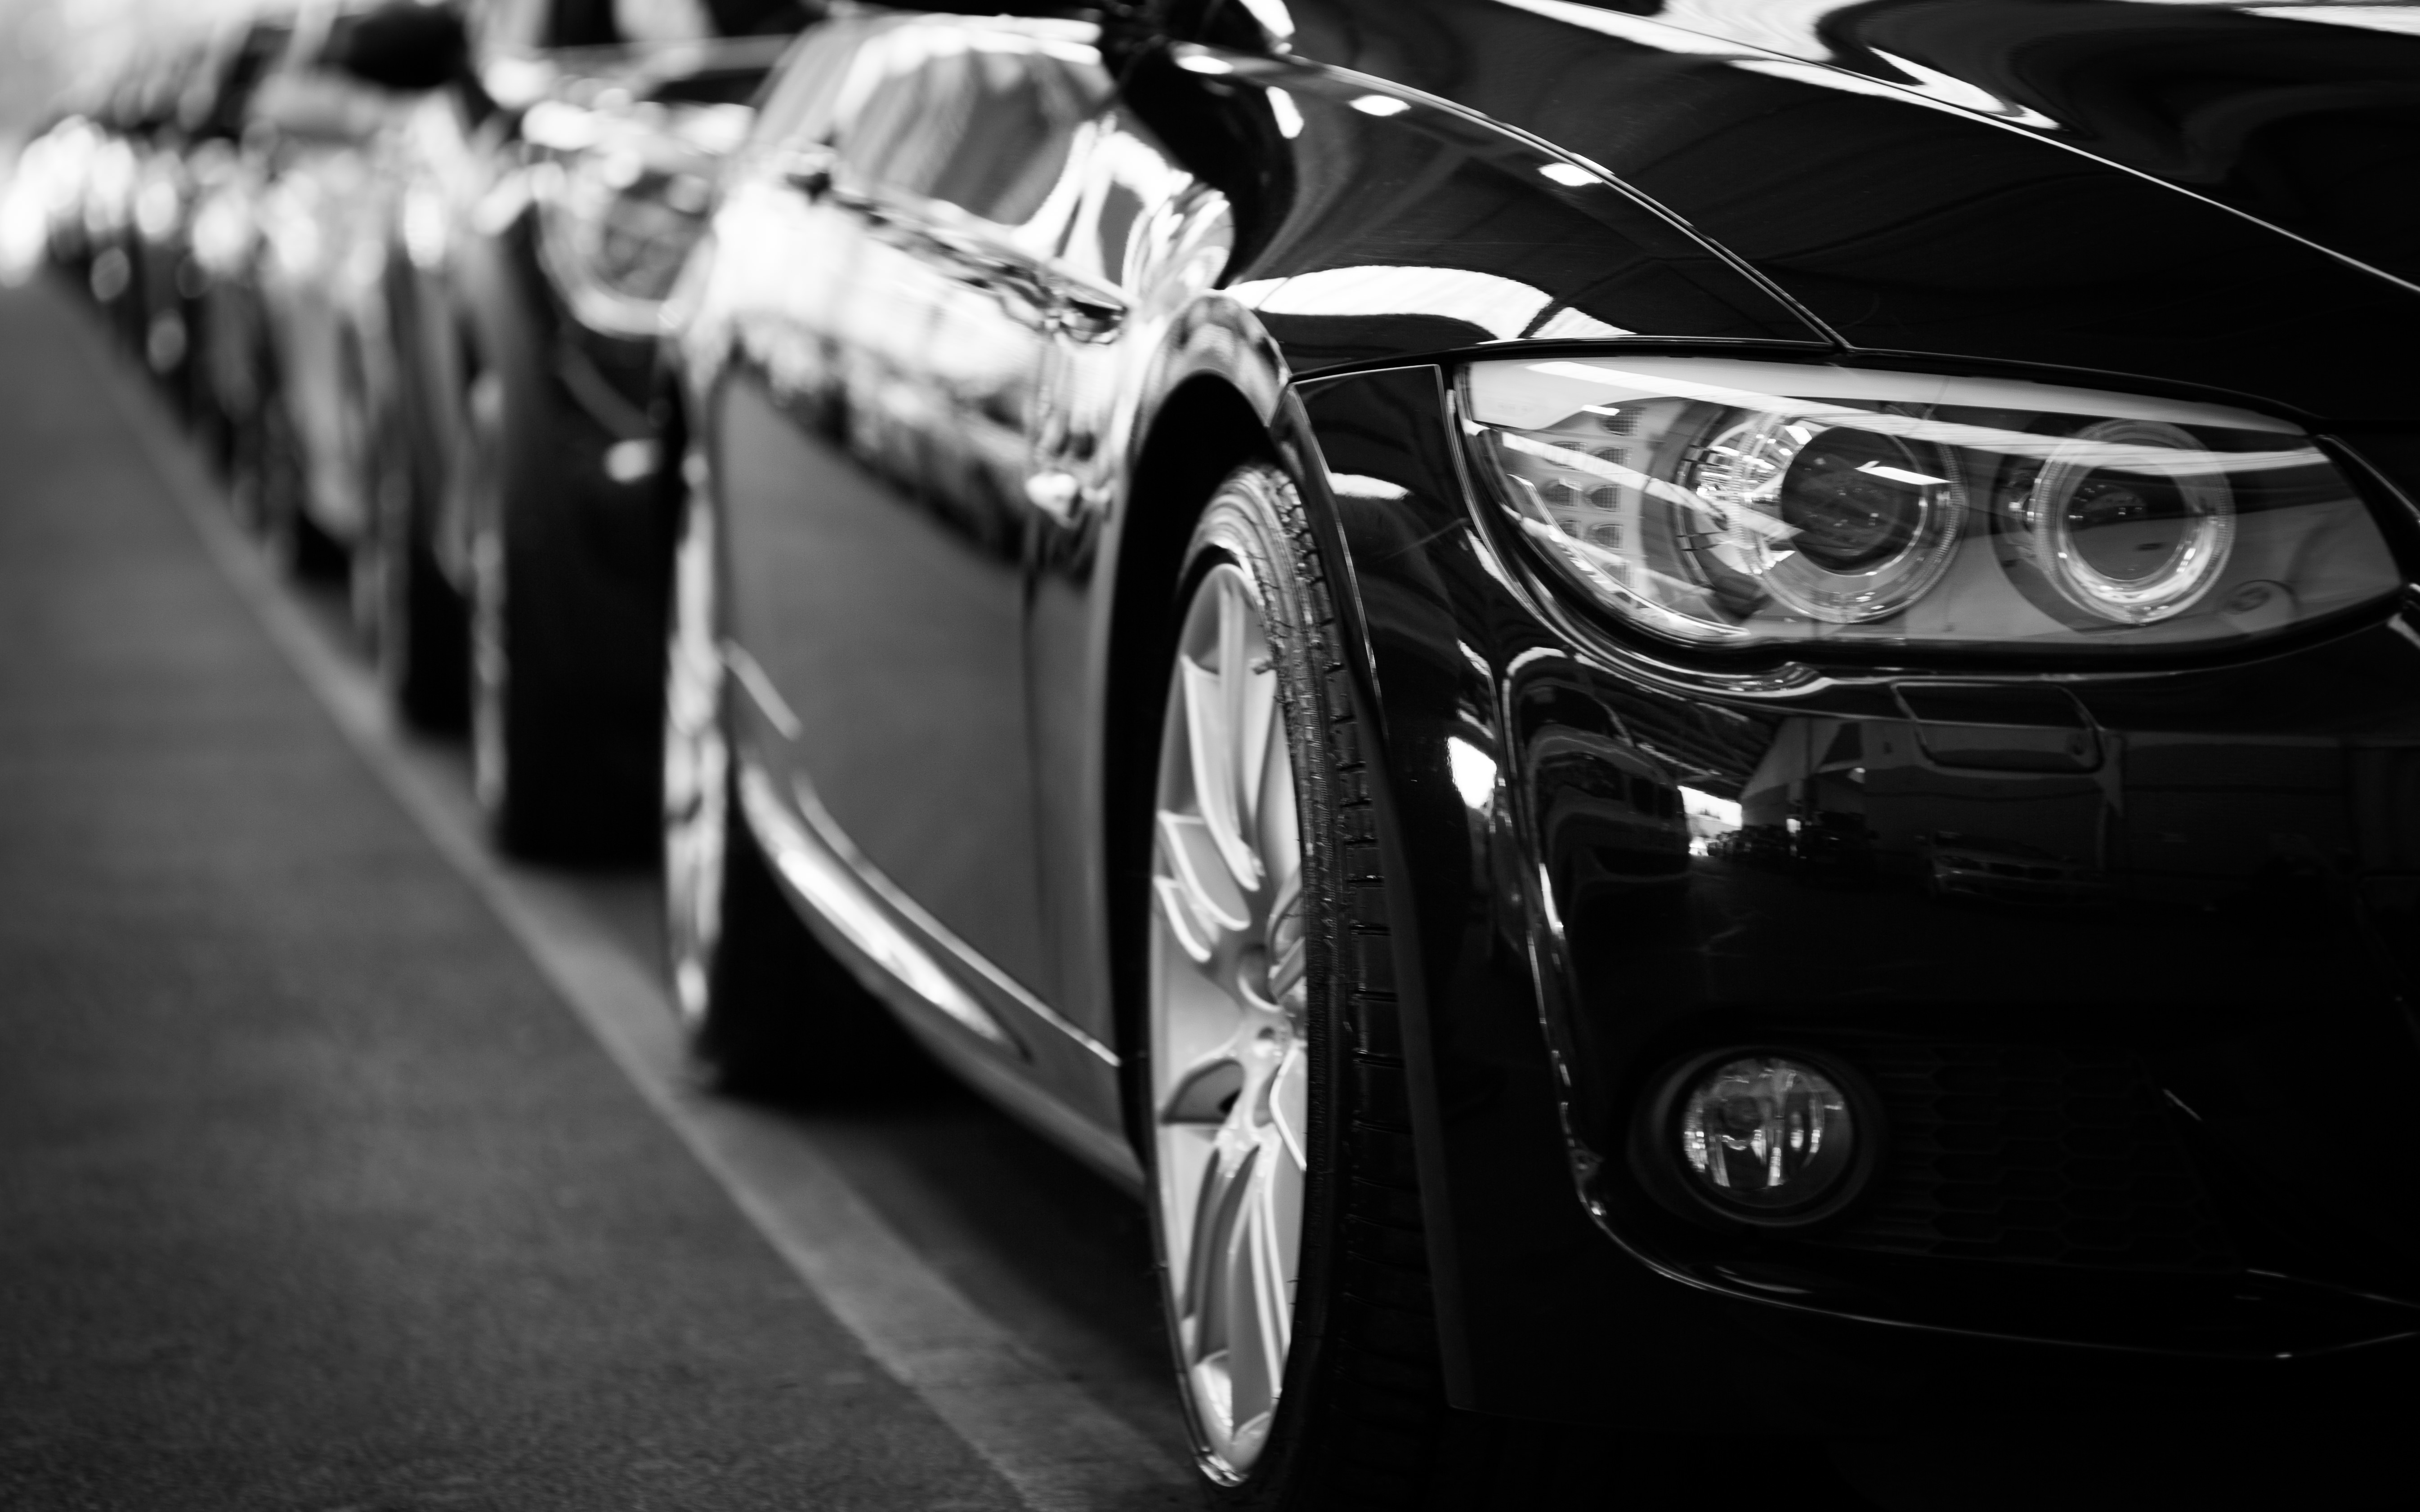 How Will Self-Driving Vehicles Impact the Car Rental Industry?